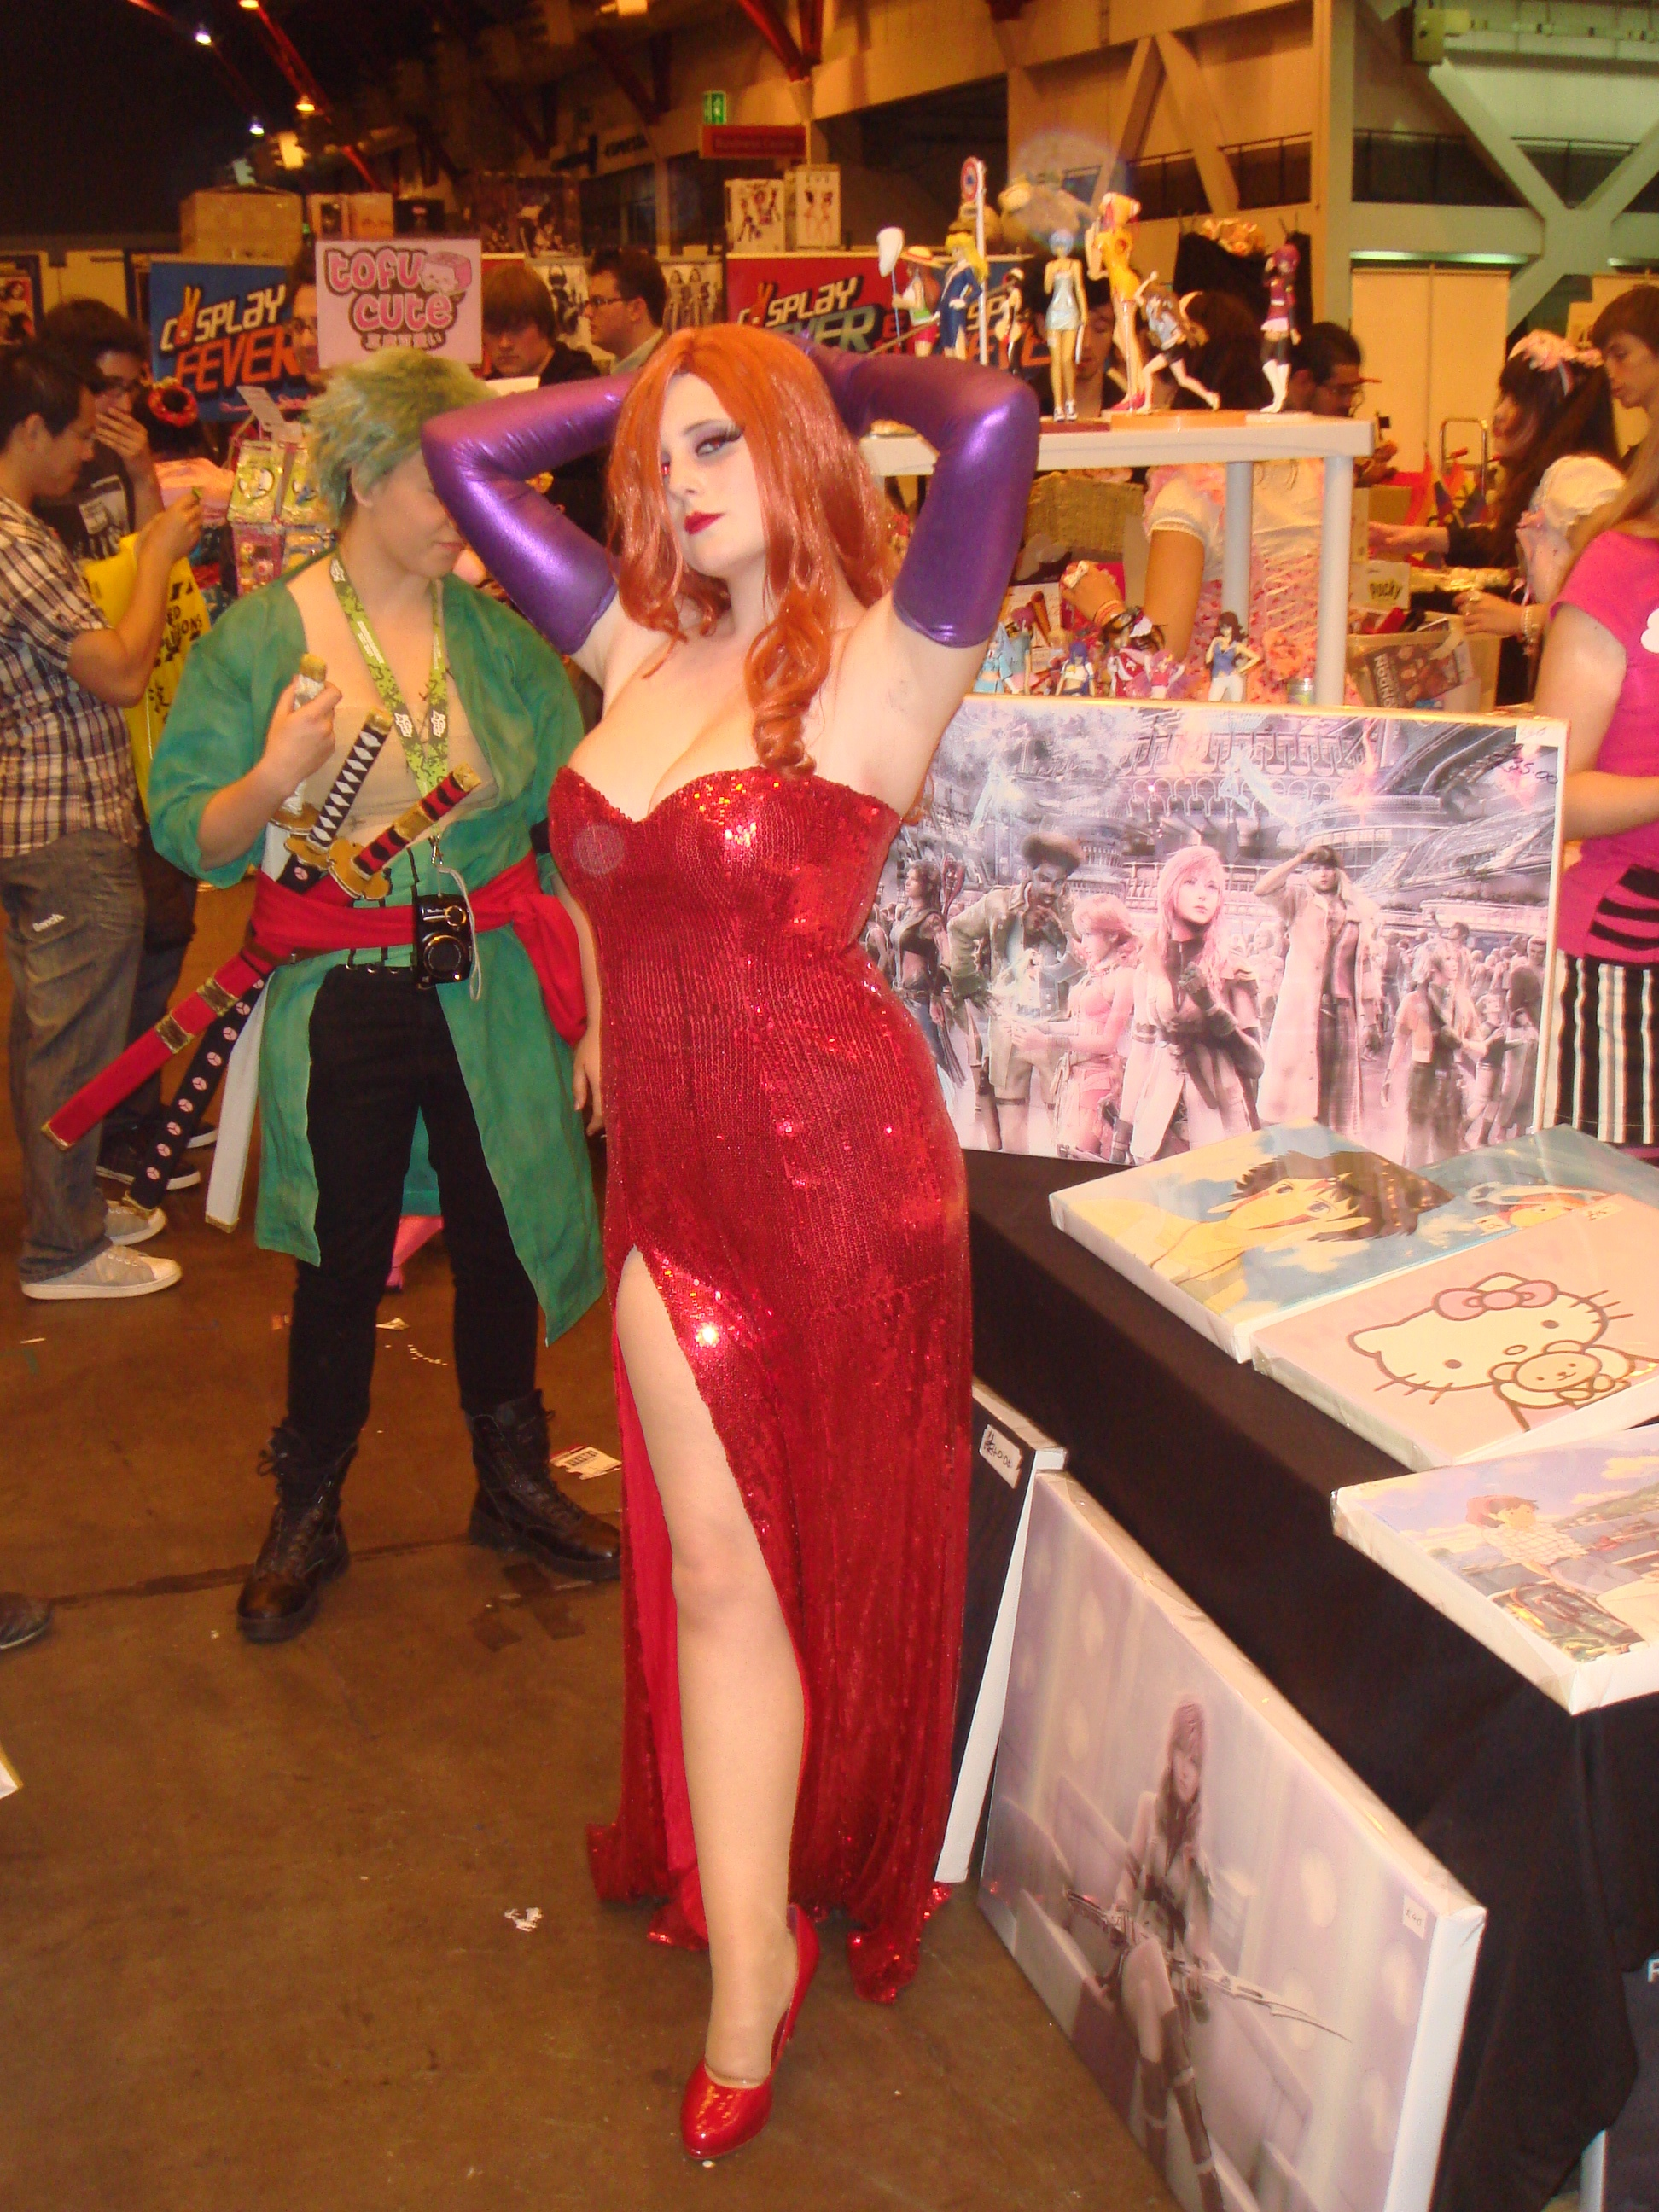 Jessica Rabbit 3D http://nintendoscene.com/2011/07/10/london-film-and-comic-con-2011-legend-of-zelda-skyward-sword-resident-evil-revelations-and-star-fox-63-3d-playable-demo-reports/cosplay-jessica-rabbit-lfcc-09-jul-11-4/